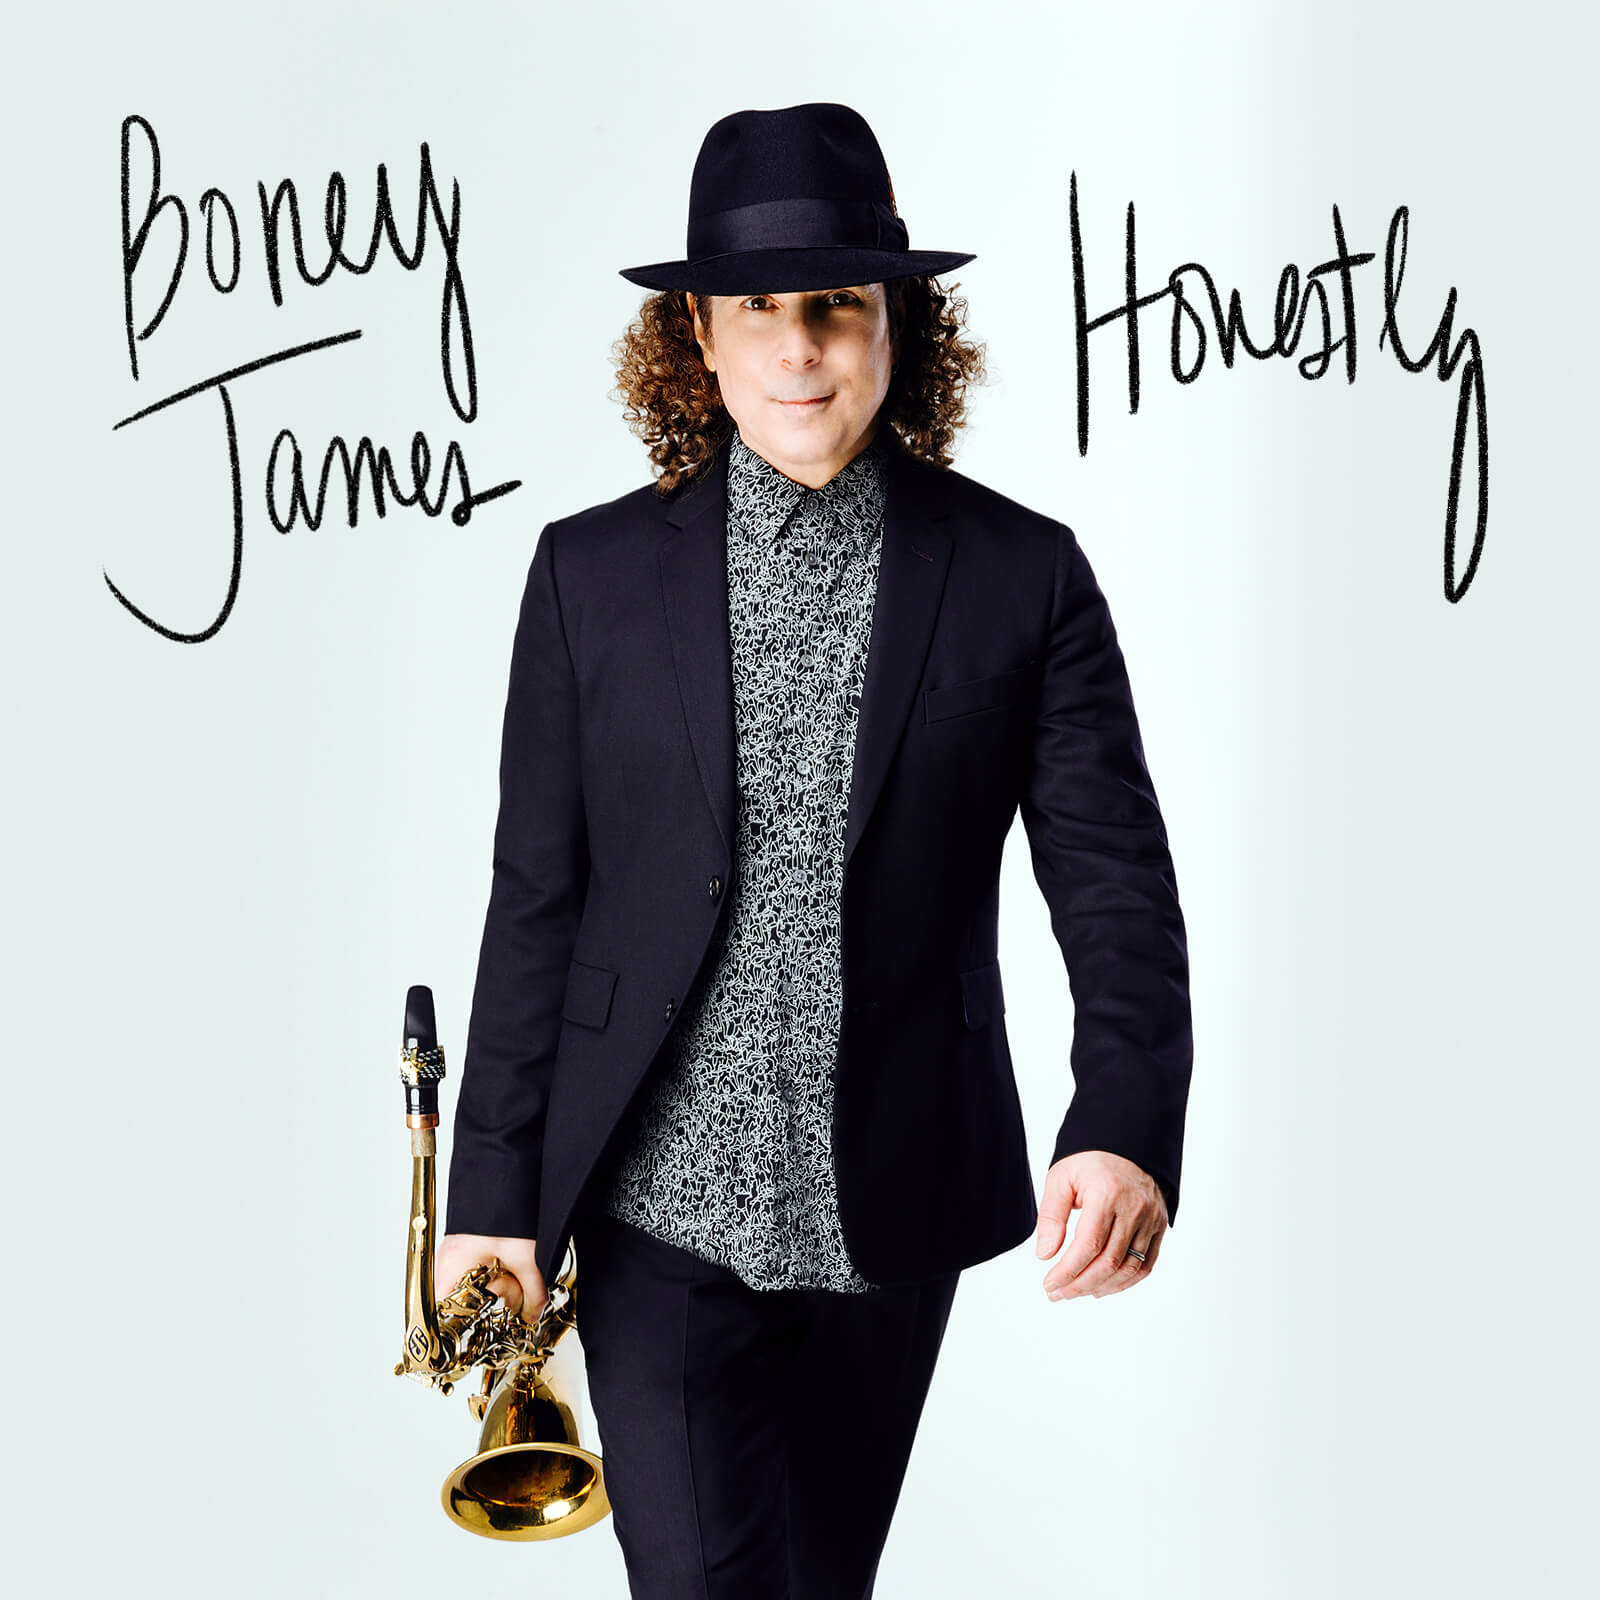 Boney James Honestly